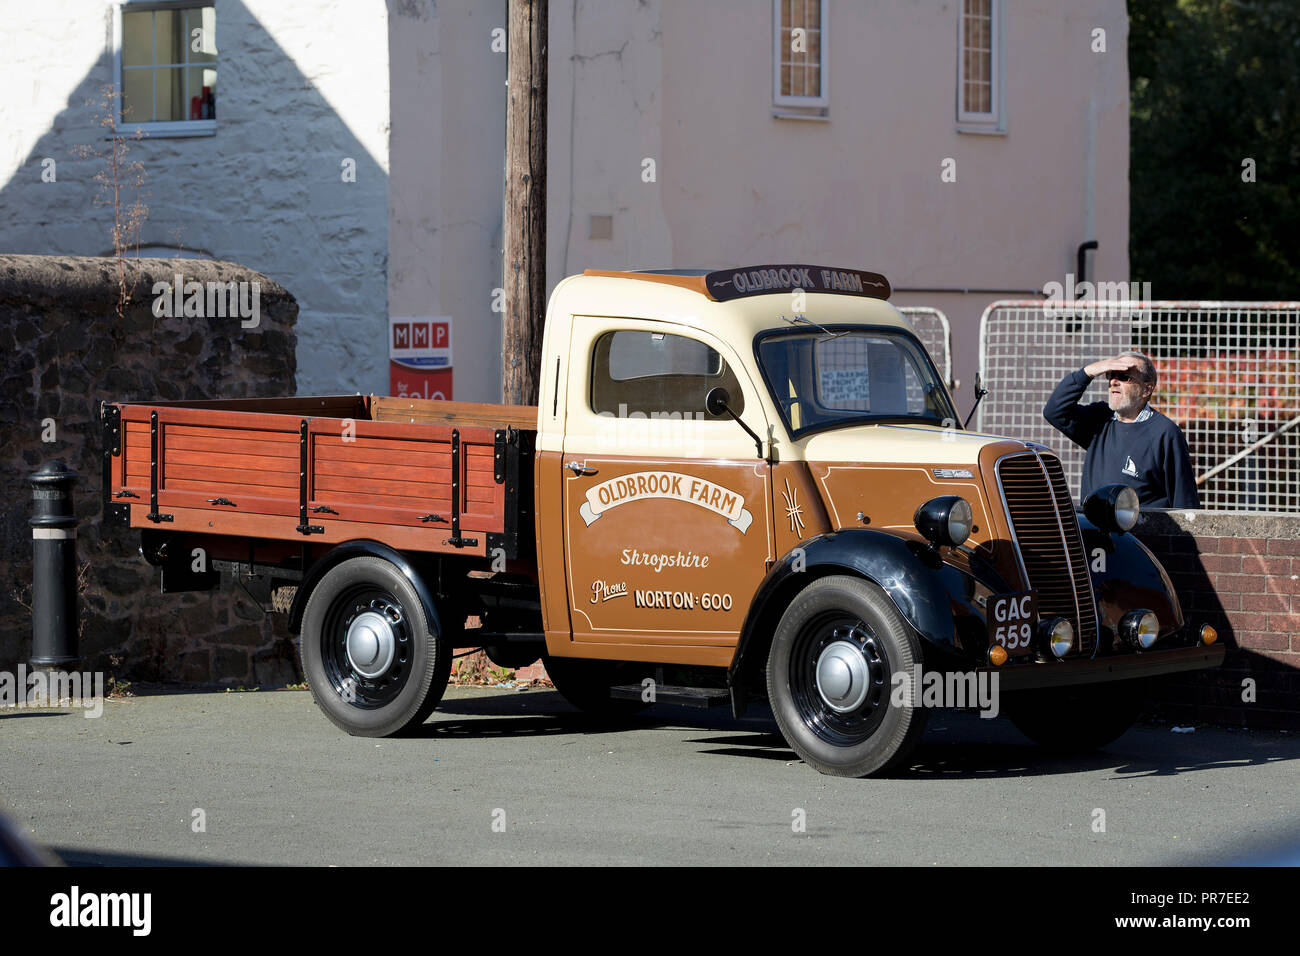 Vintage Pick Up Truck High Resolution Stock Photography And Images Alamy